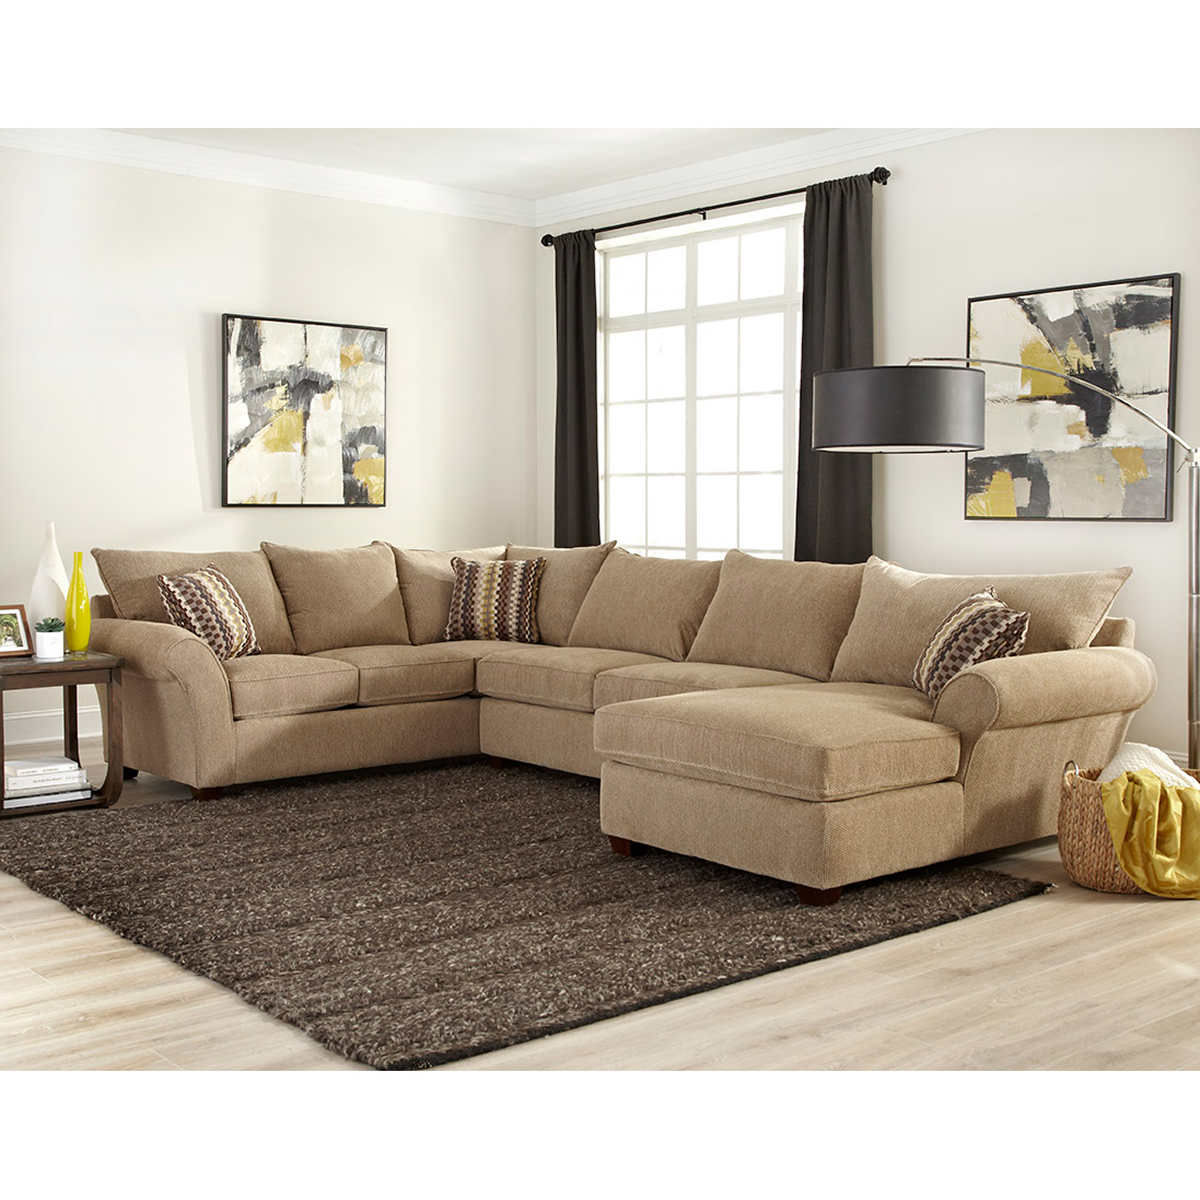 contemporary macy's furniture sofa inspiration-Stunning Macy's Furniture sofa Plan